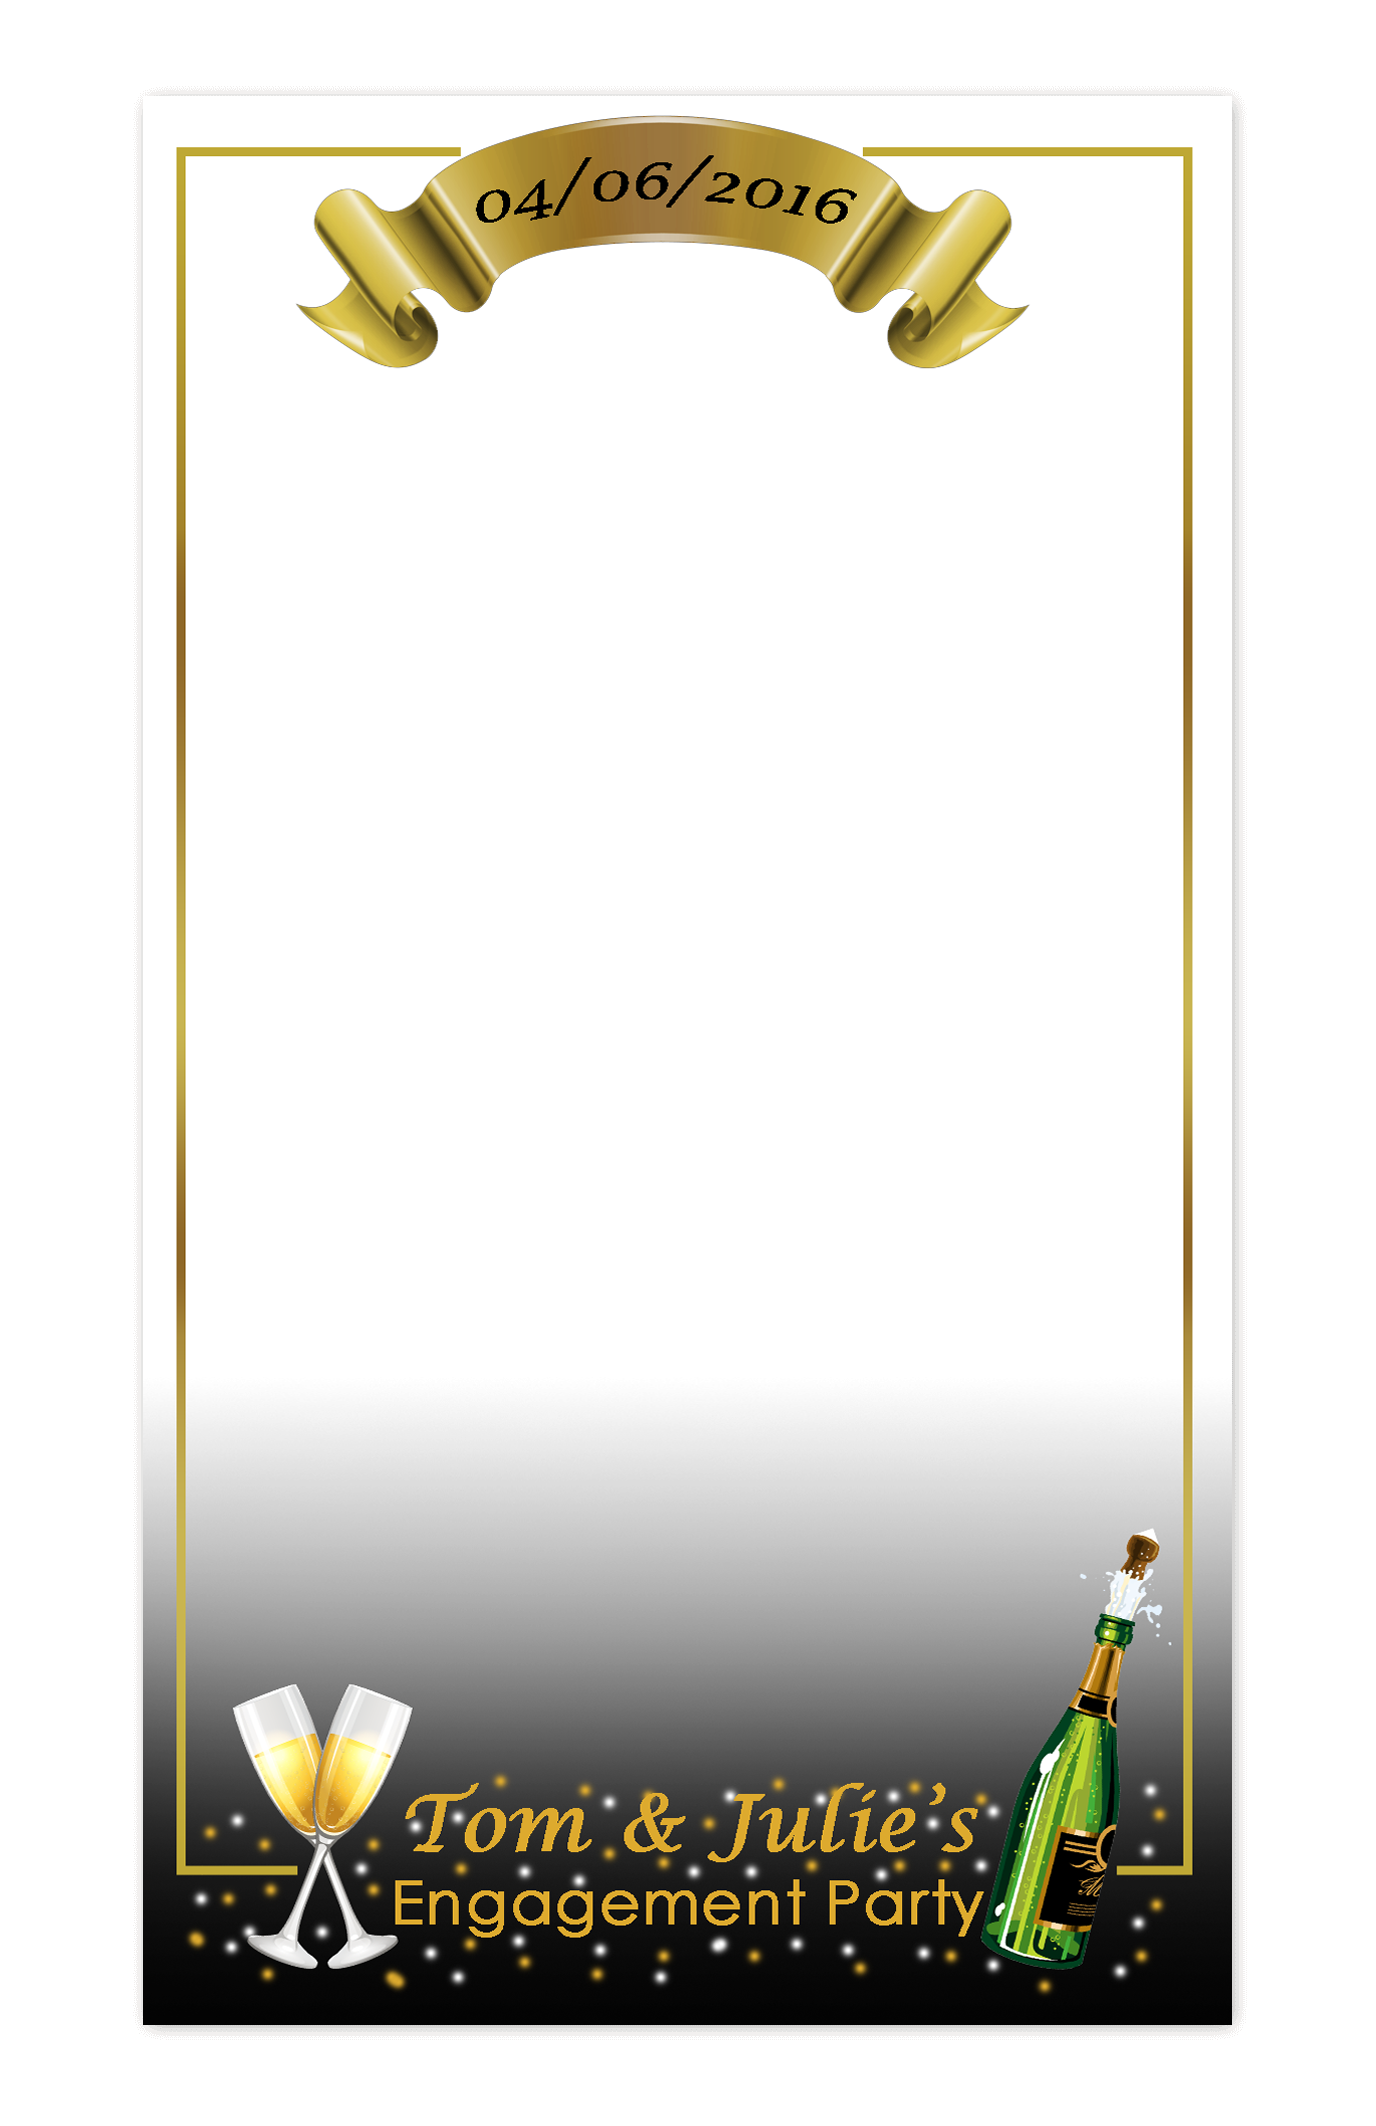 GB Designs - Custom Snapchat Filter: Tom & Julie\'s Engagement Party